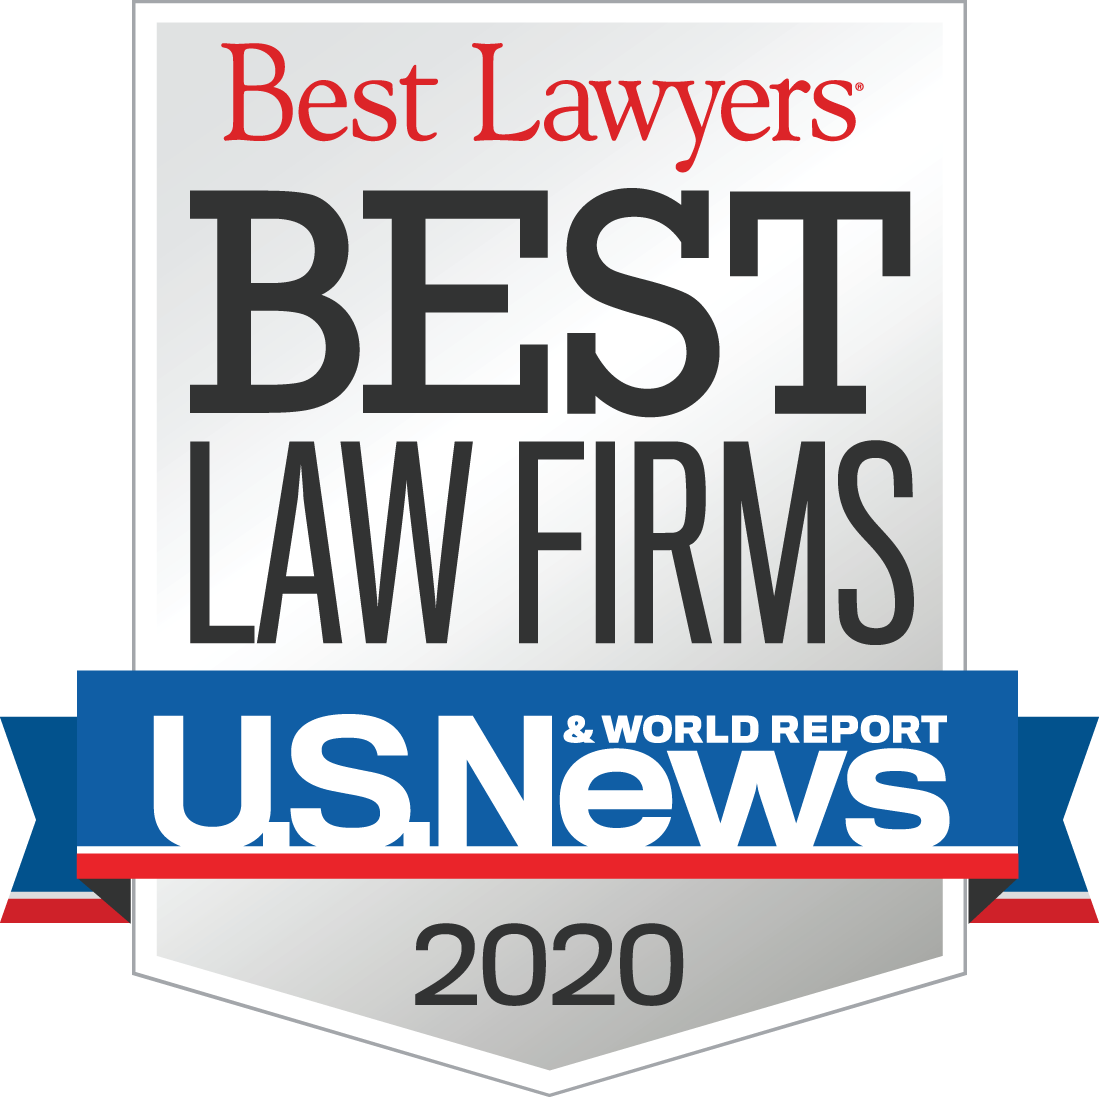 Best Lawyers Best Law Firm